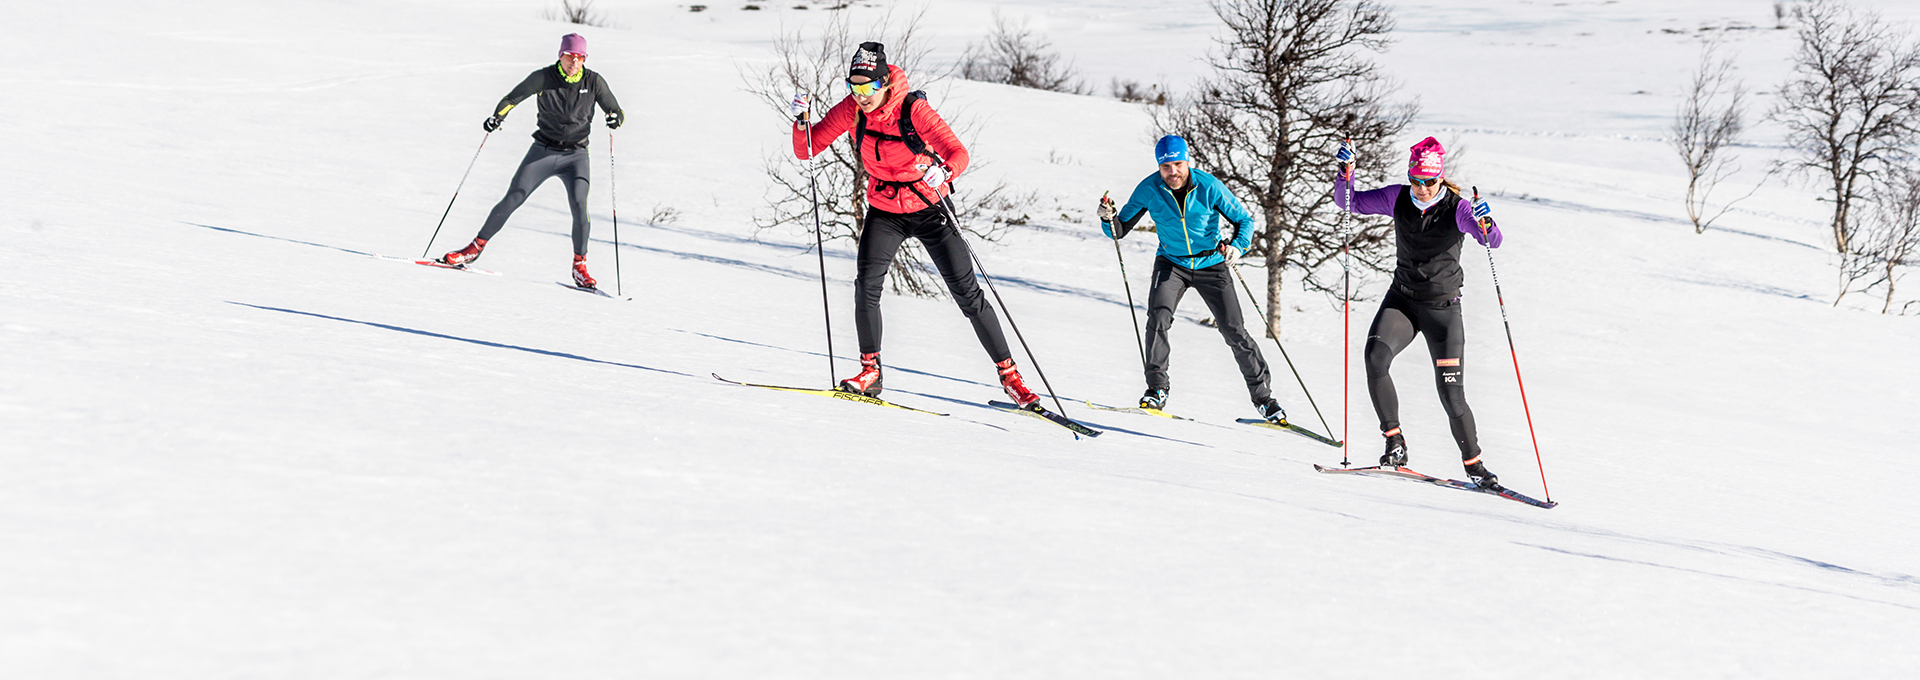 two cross-country skiers in the tracks